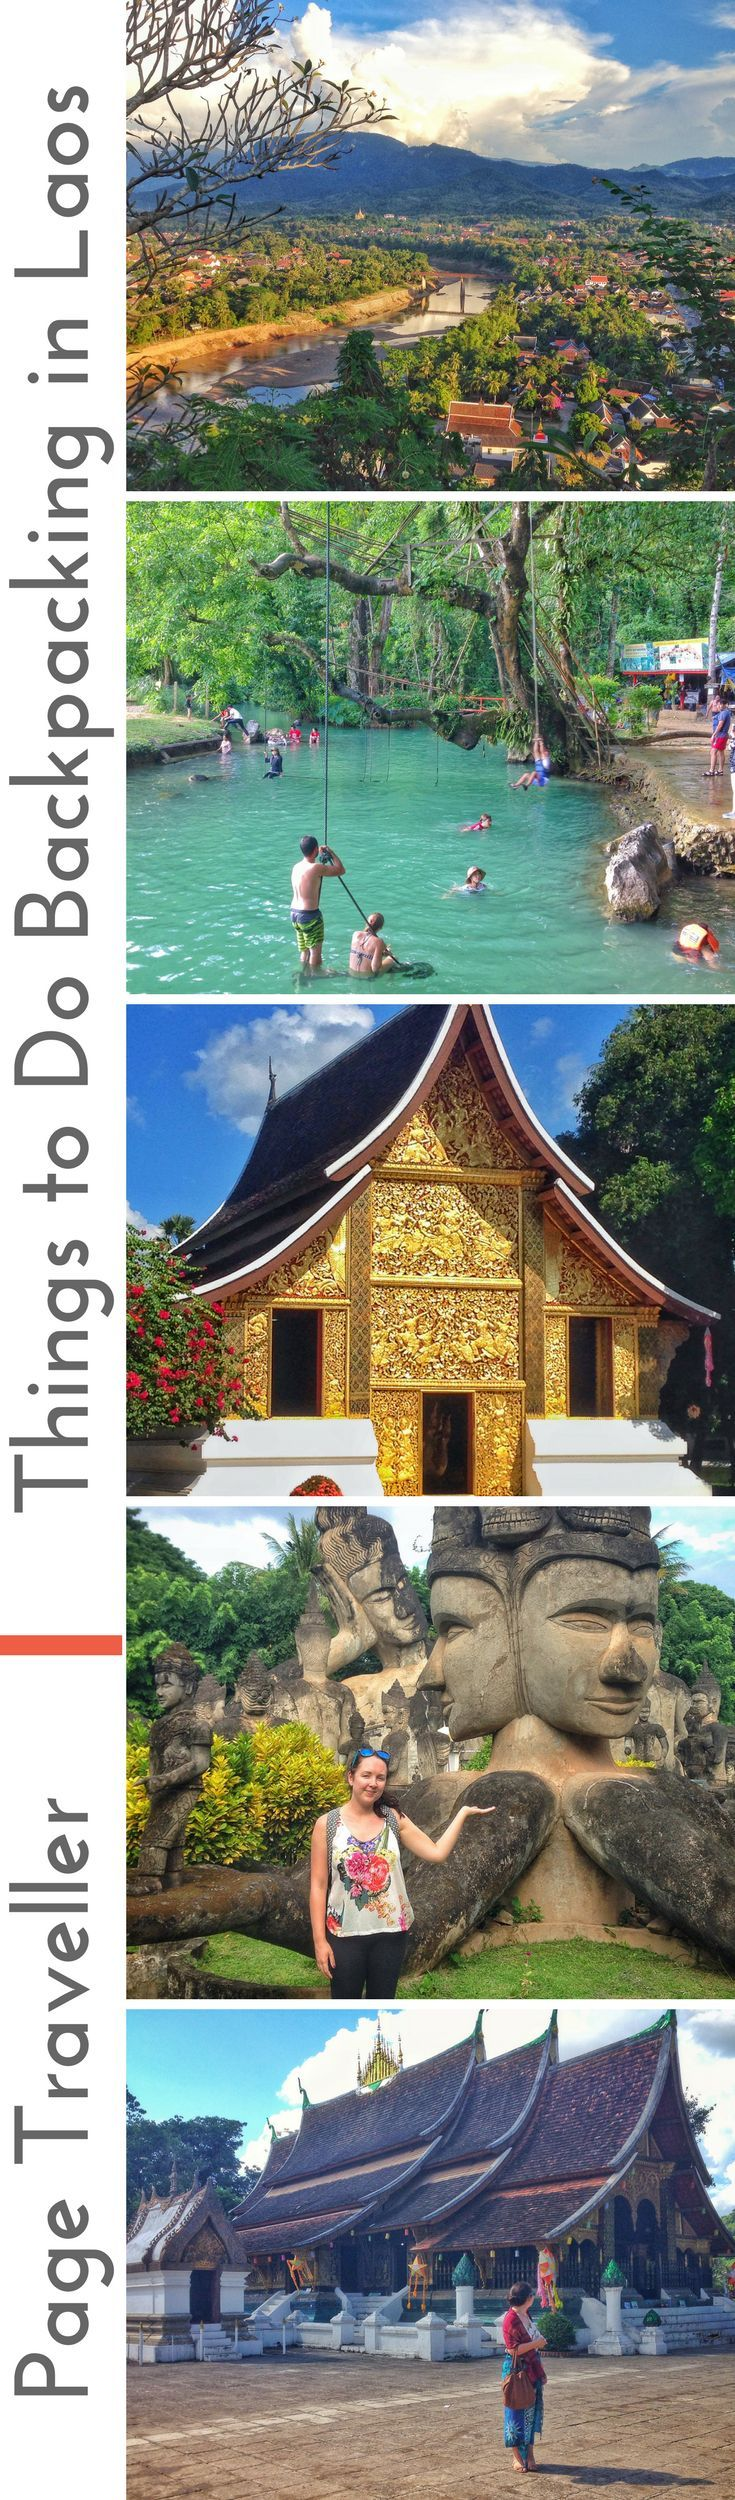 Backpacking Laos was easily one of the highlights of my whole Southeast Asia trip. I had a one week itinerary for Laos, which traversed from Luang Prabang to Vang Vieng, then Van Vieng to Vientiane. There are loads of things to do in Laos, so I've put together a budget travel guide for a backpacking route that showcases the best places to visit in Laos. #Laos #LuangPrabang #VangVieng #Vientiane #HuayXi #SoutheastAsia #Asia #backpacking #backpacker #travel #travelblogger #travelblog…